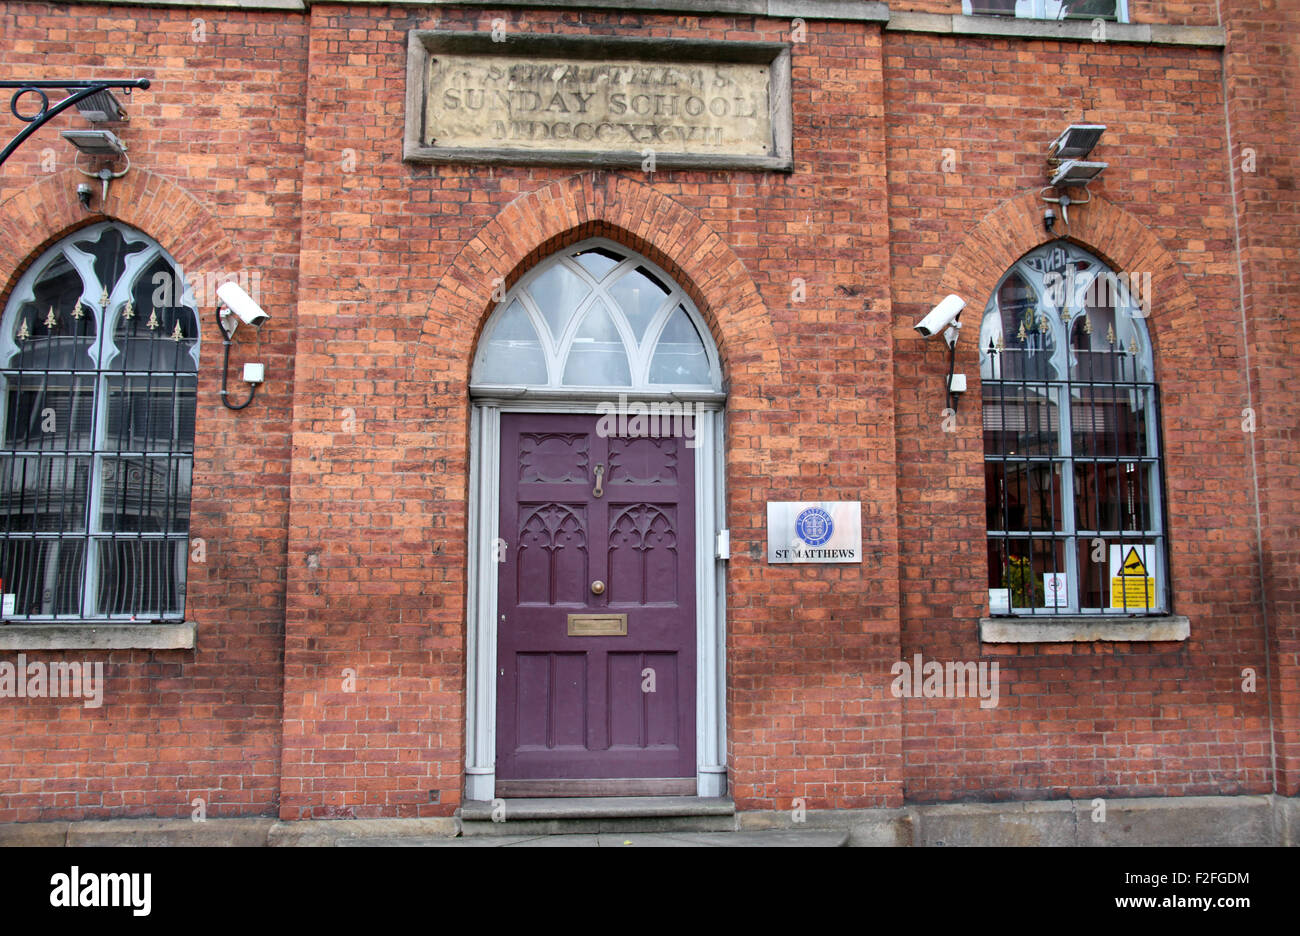 Former St Matthews Church Sunday School building in Castlefield  which is now Gunn House and offices - Stock Image